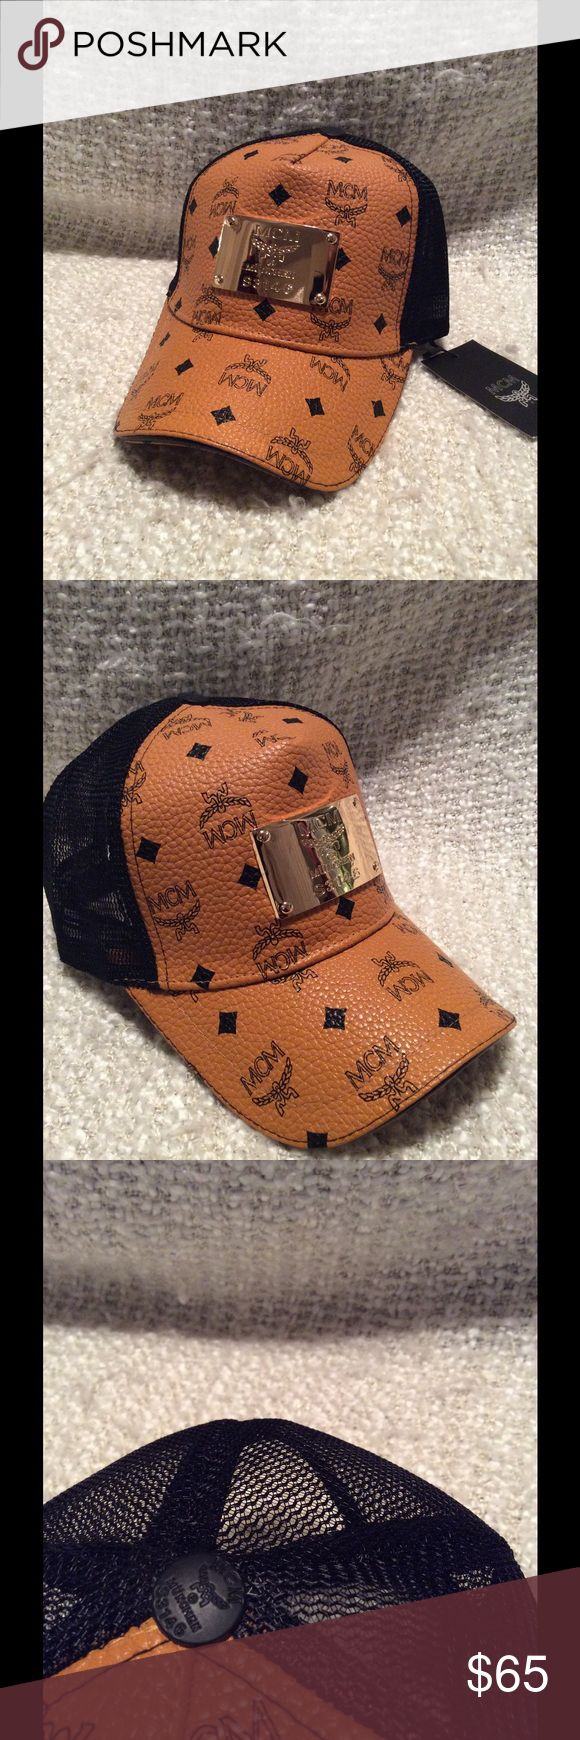 McM hats Mcm hats new with tag Accessories Hats